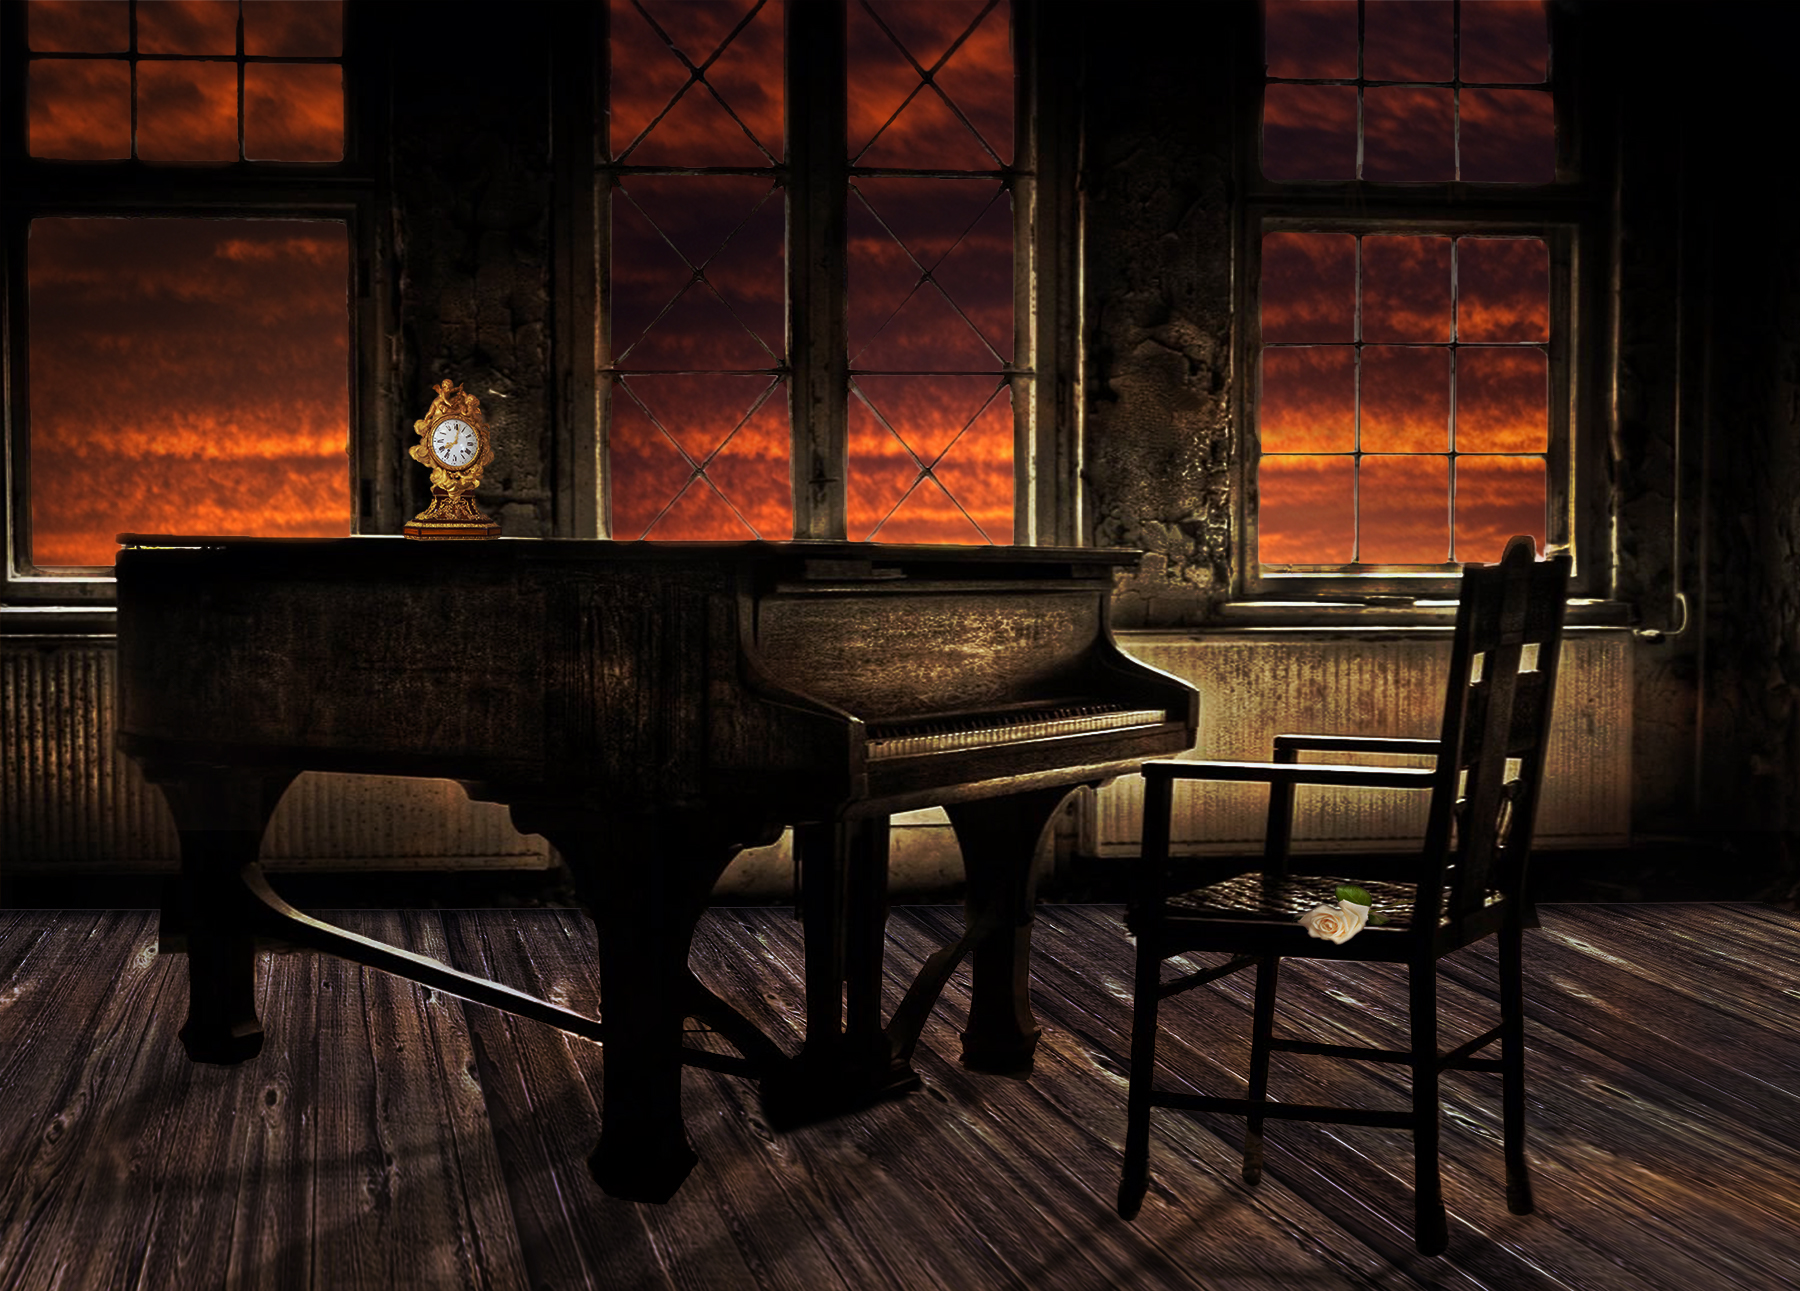 grand piano in empty room again sunset windows